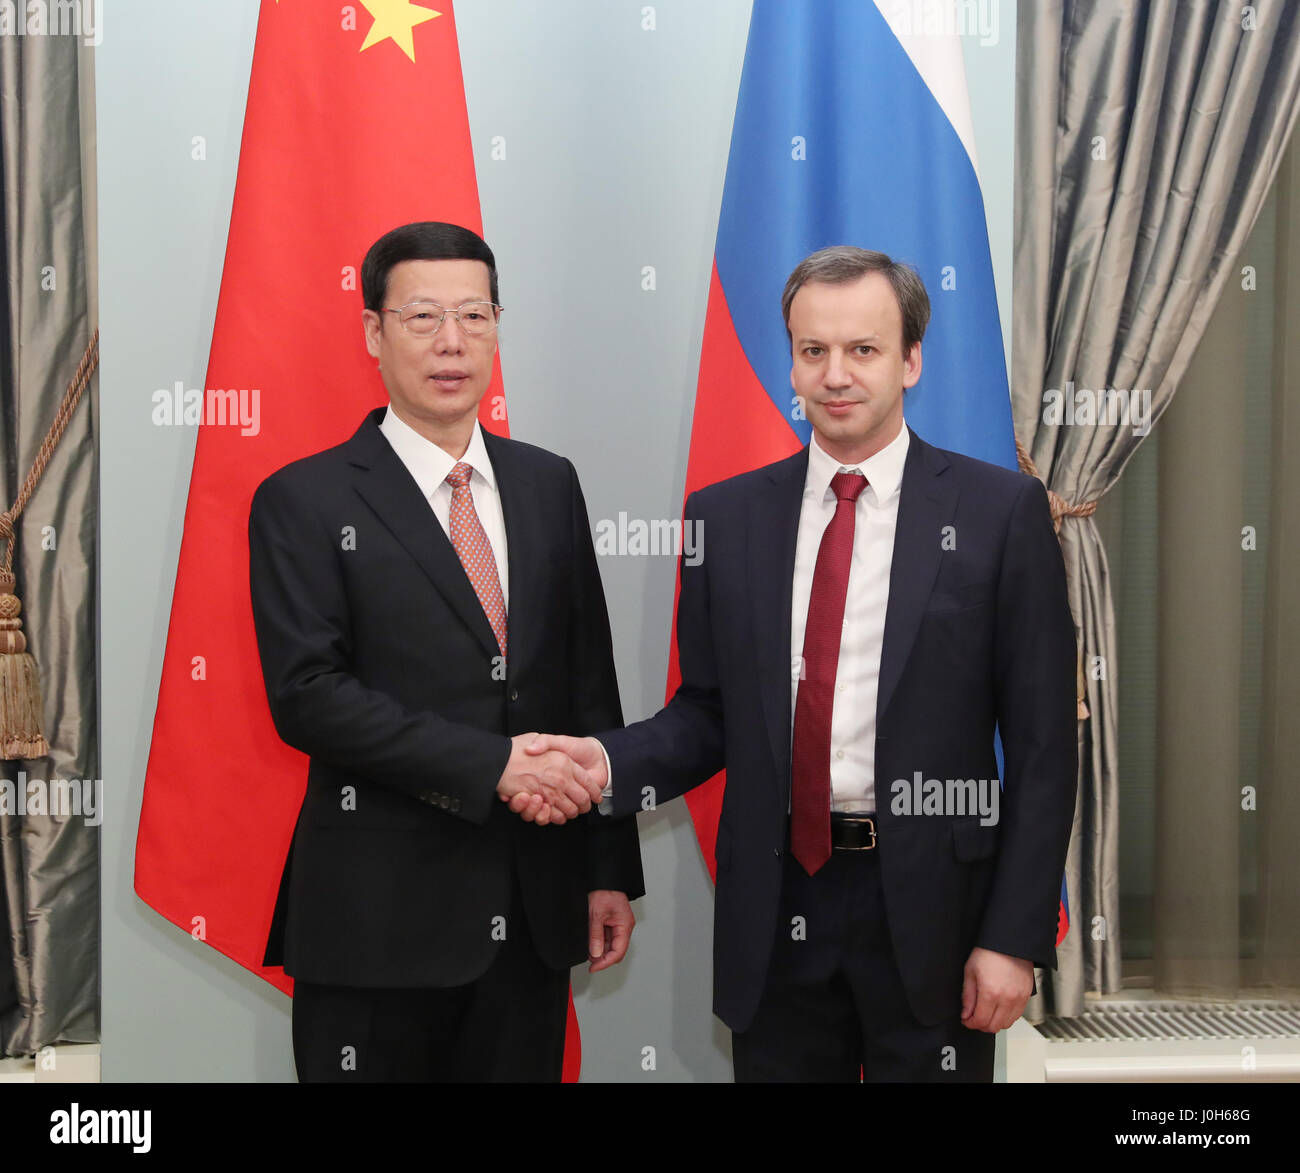 Moscow, Russia. 12th Apr, 2017. Chinese Vice Premier Zhang Gaoli (L) and his Russian counterpart Arkady Dvorkovich shake hands during the meeting of the China-Russia Energy Cooperation Committee in Moscow, Russia, April 12, 2017. Credit: Pang Xinglei/Xinhua/Alamy Live News Stock Photo